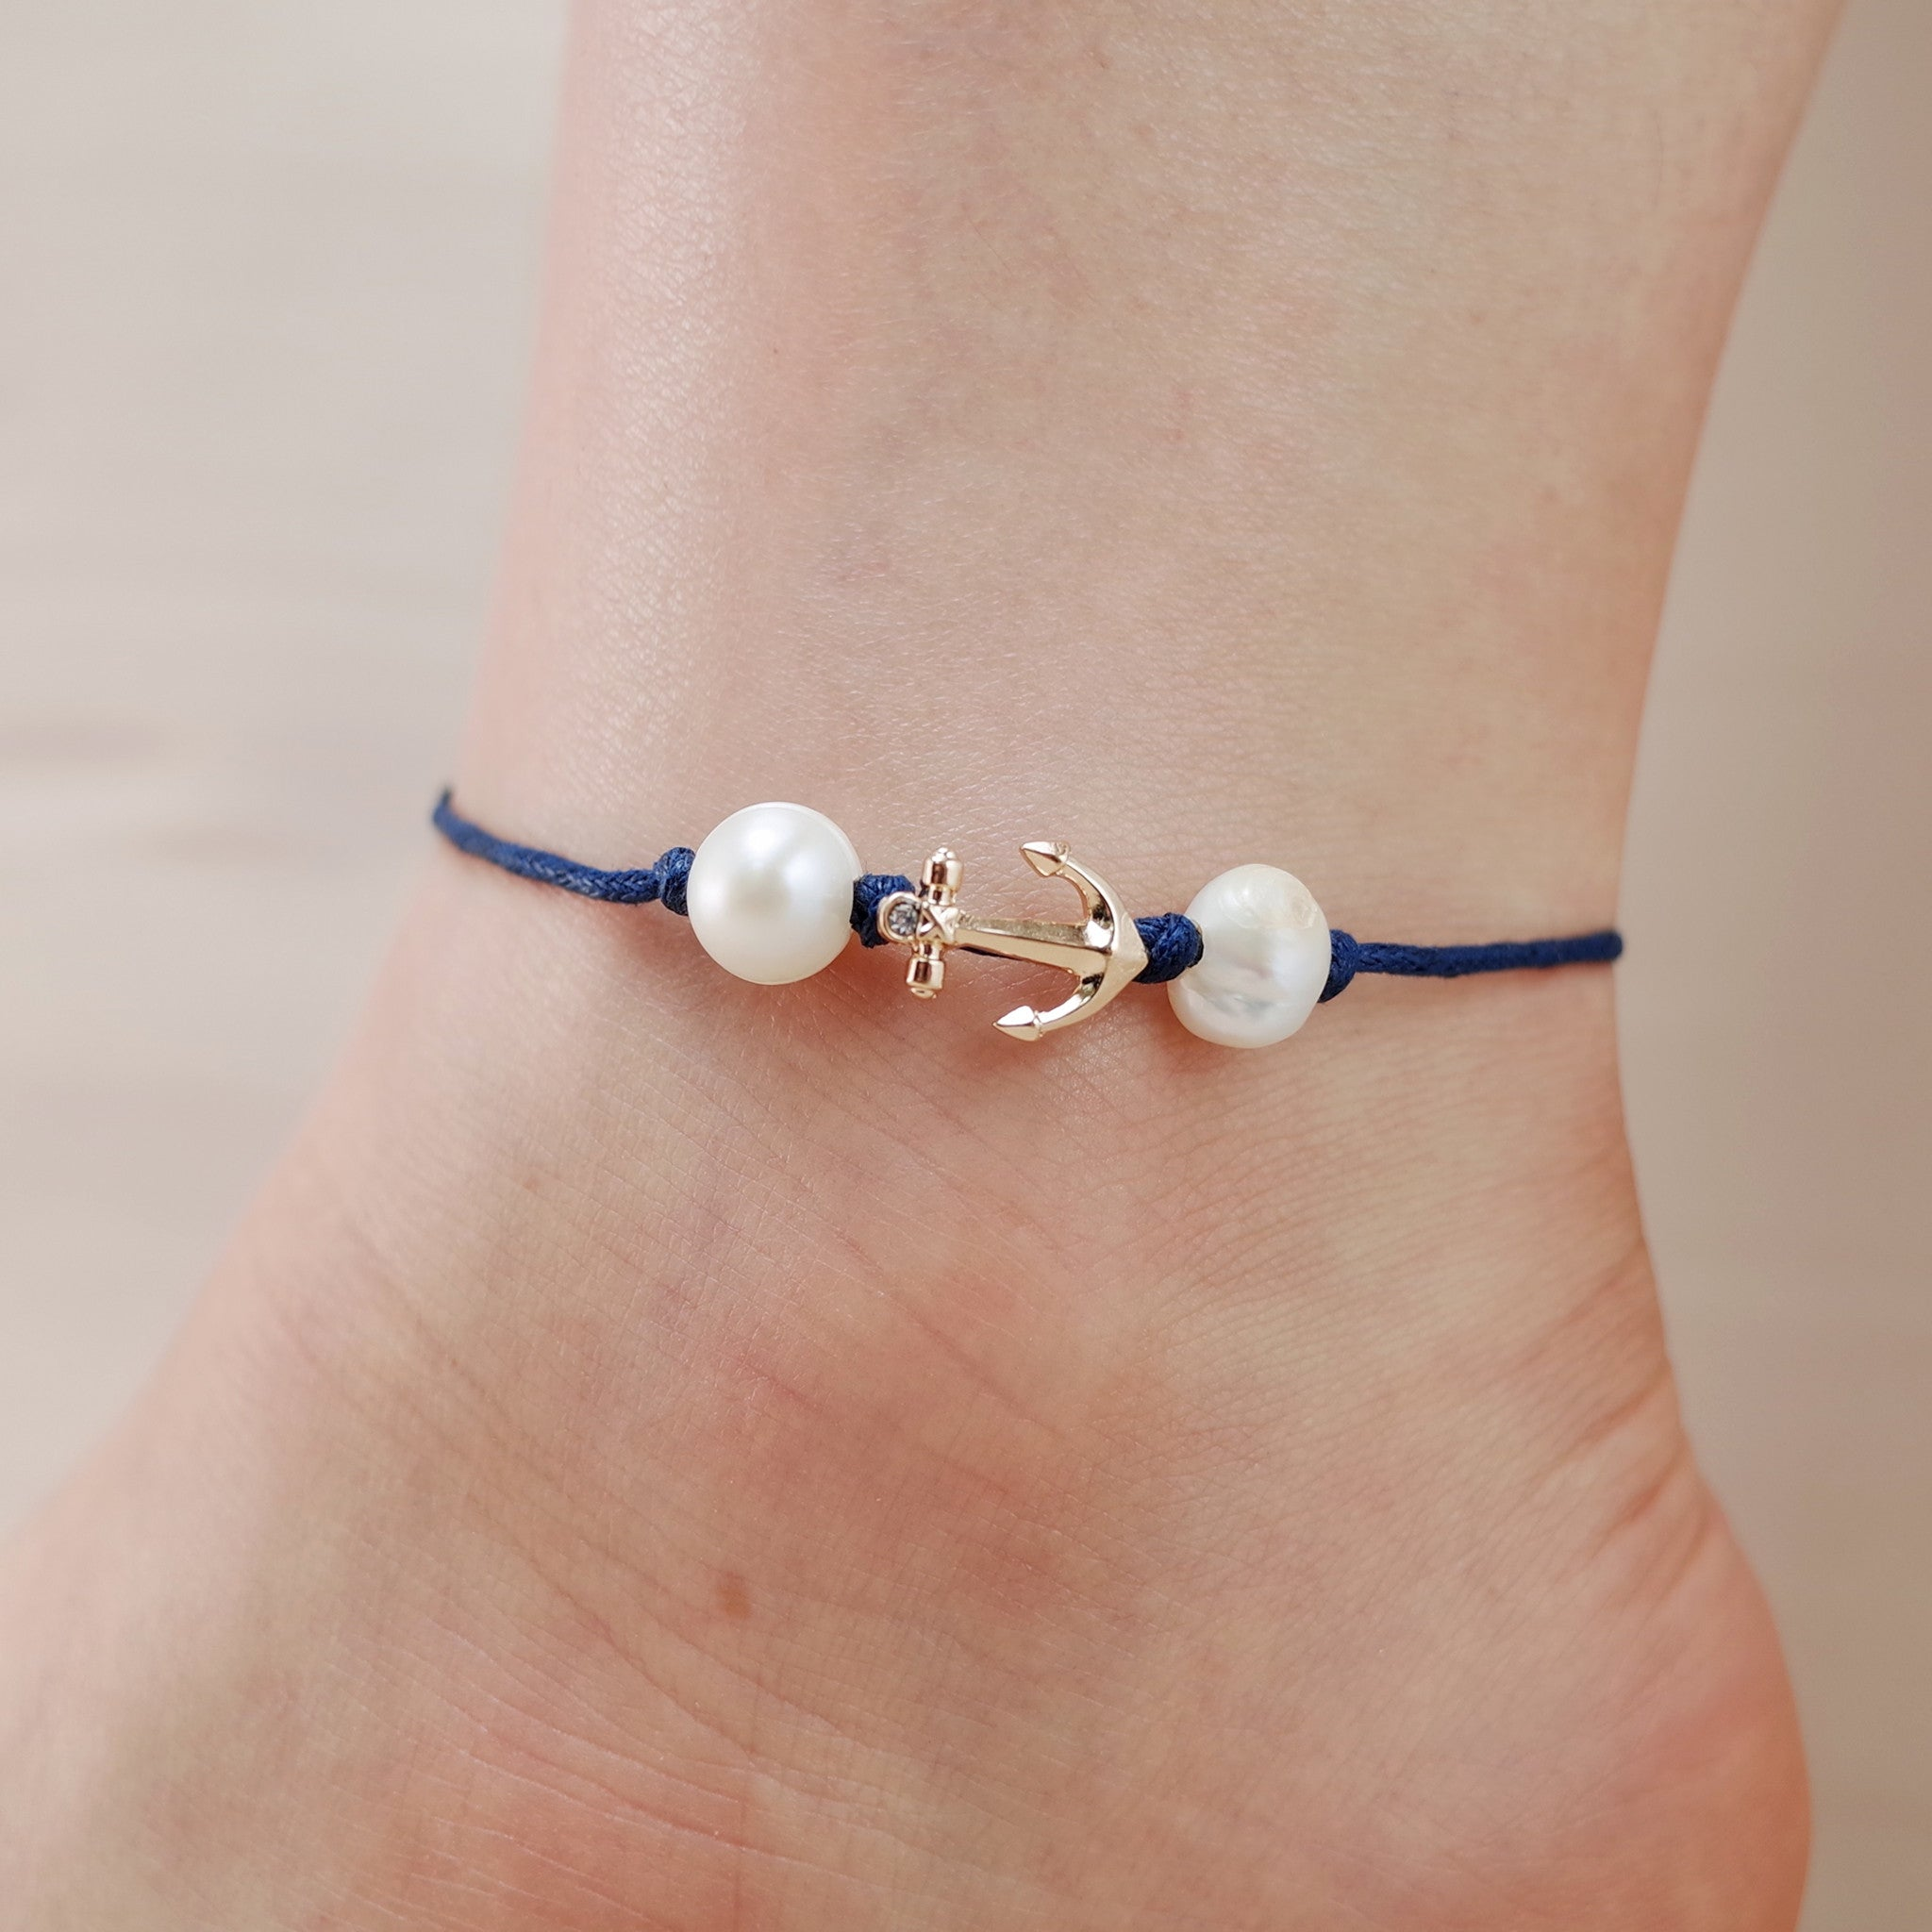 ankle gift boho for il listing anklet flower women bracelet style beach bracelets wife jewelry fullxfull